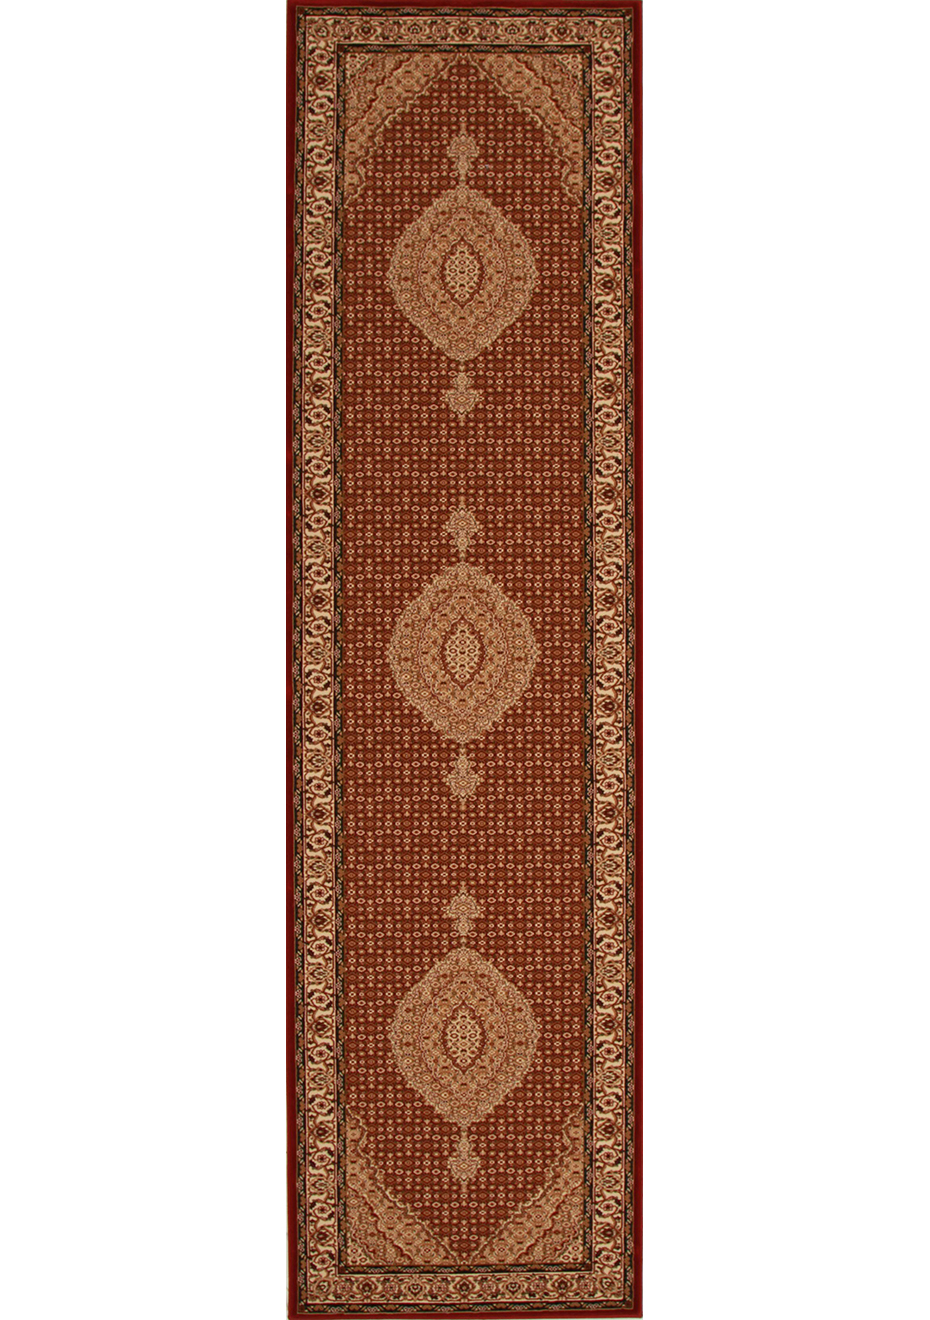 Hall Runners By The Metre Sienna Large Red 1 5 Million Point Mahi Runner Rug 400x80cm By Rug Culture